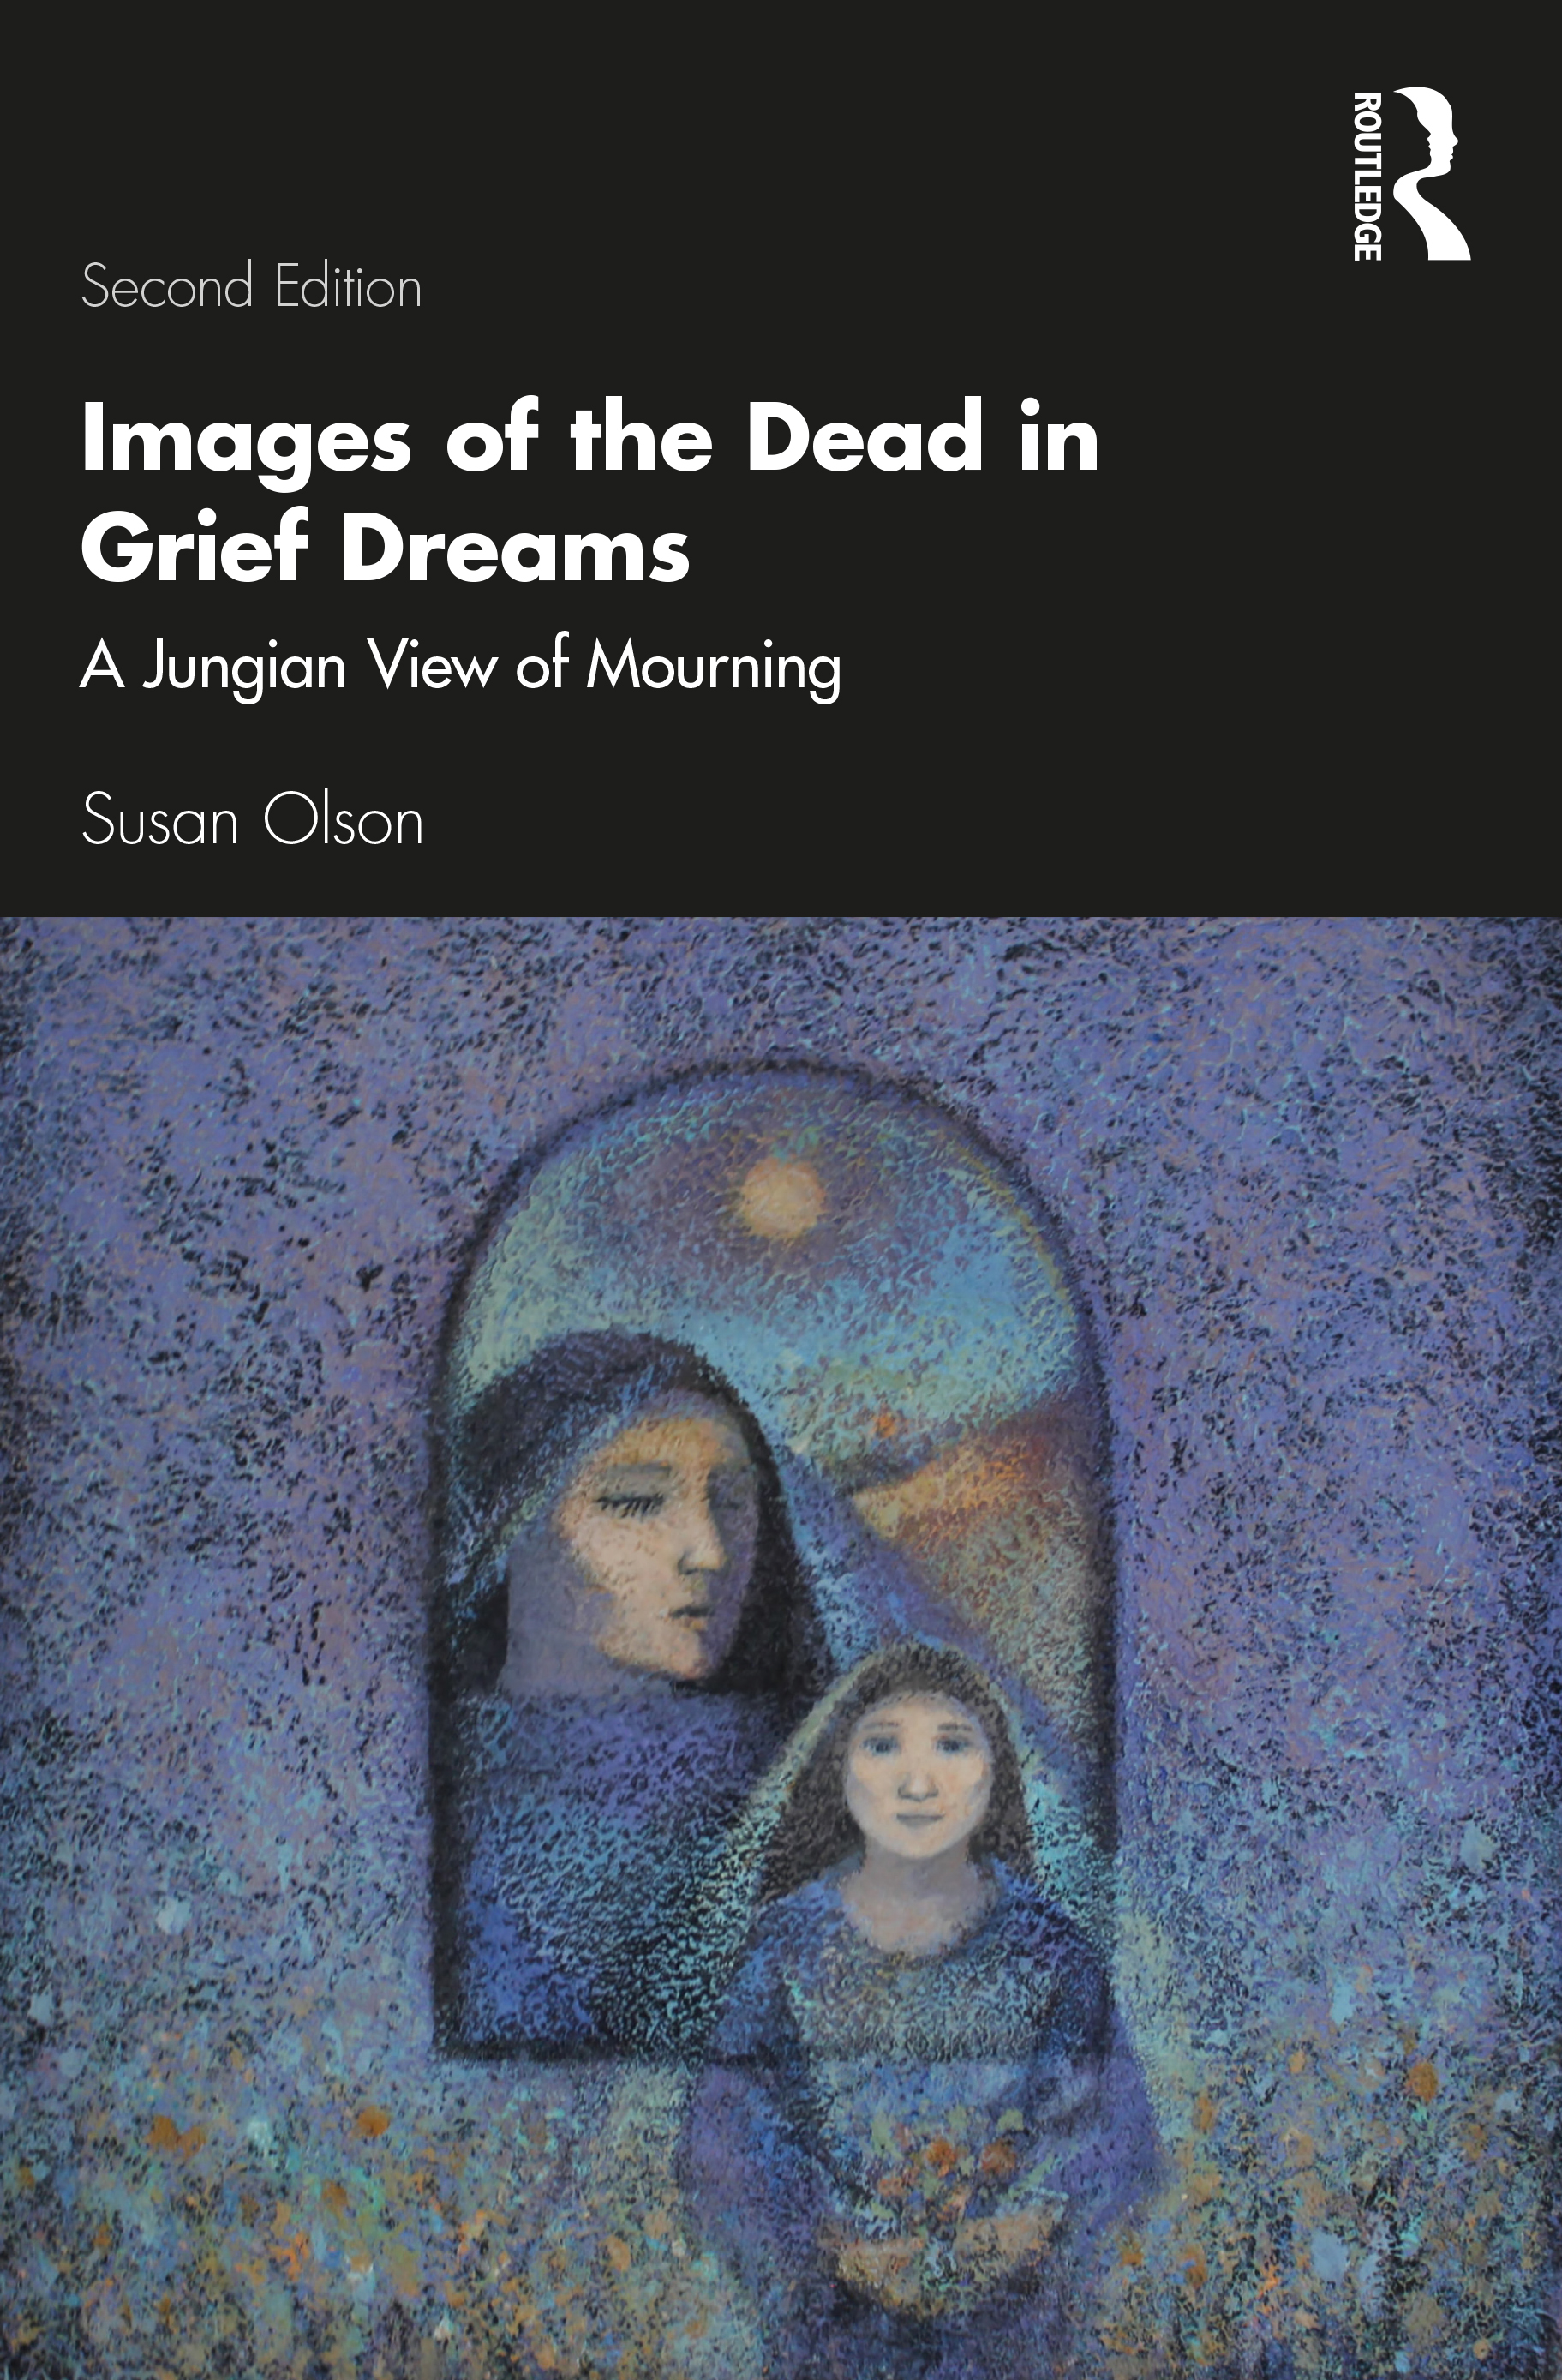 Images of the Dead in Grief Dreams: A Jungian View of Mourning book cover